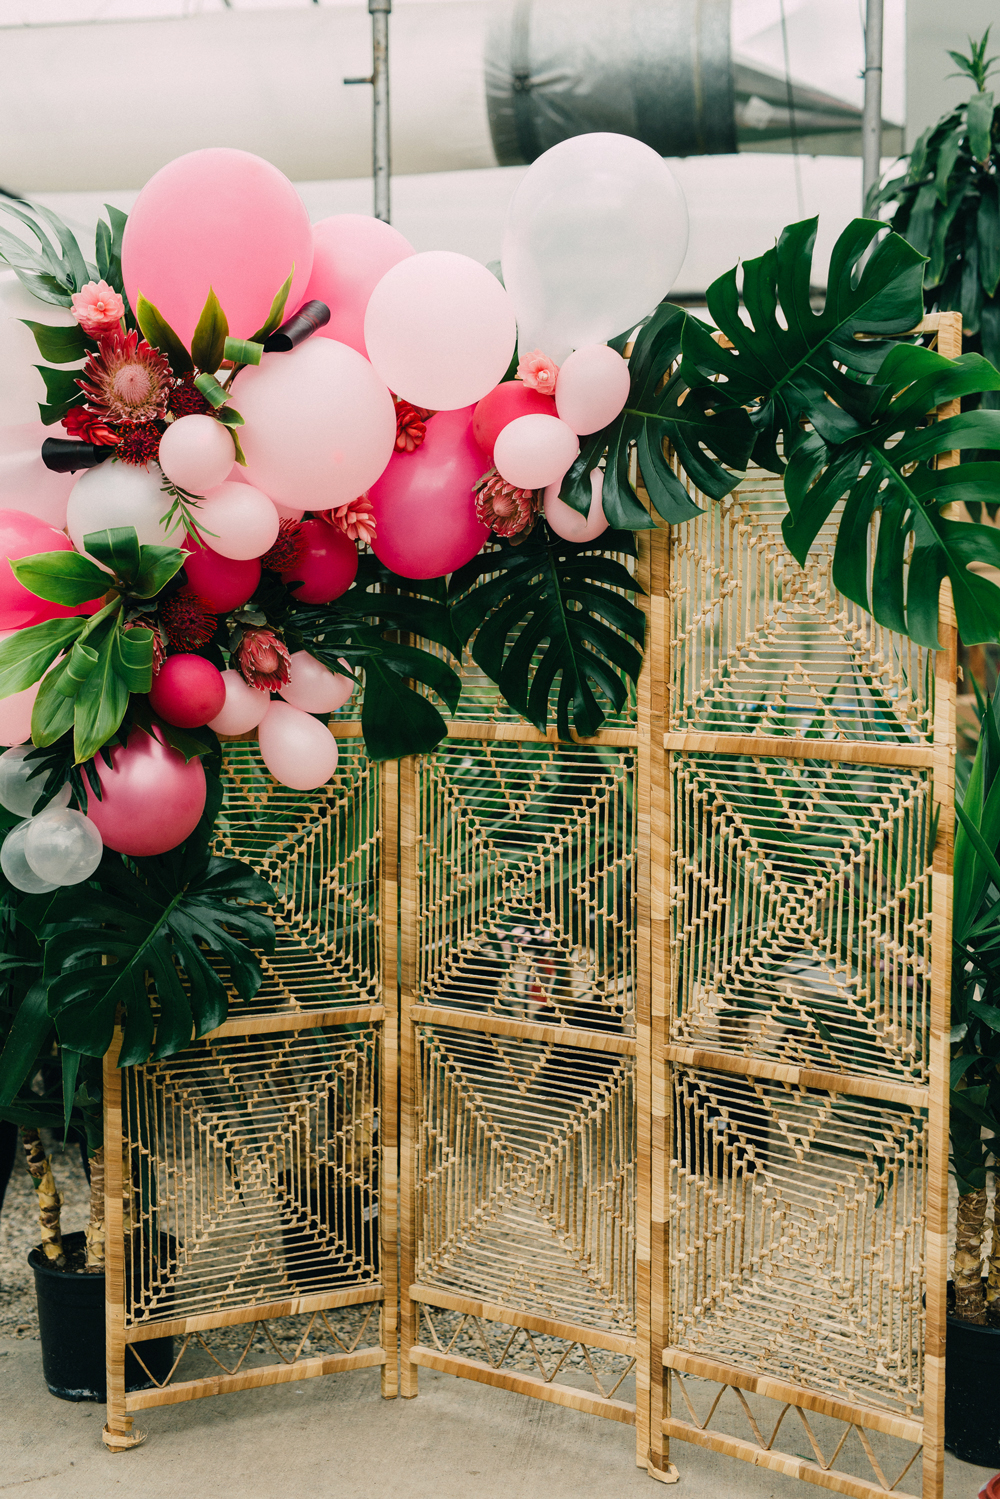 woven rattan wedding decor room divider decorated with pink balloons and palm leaves